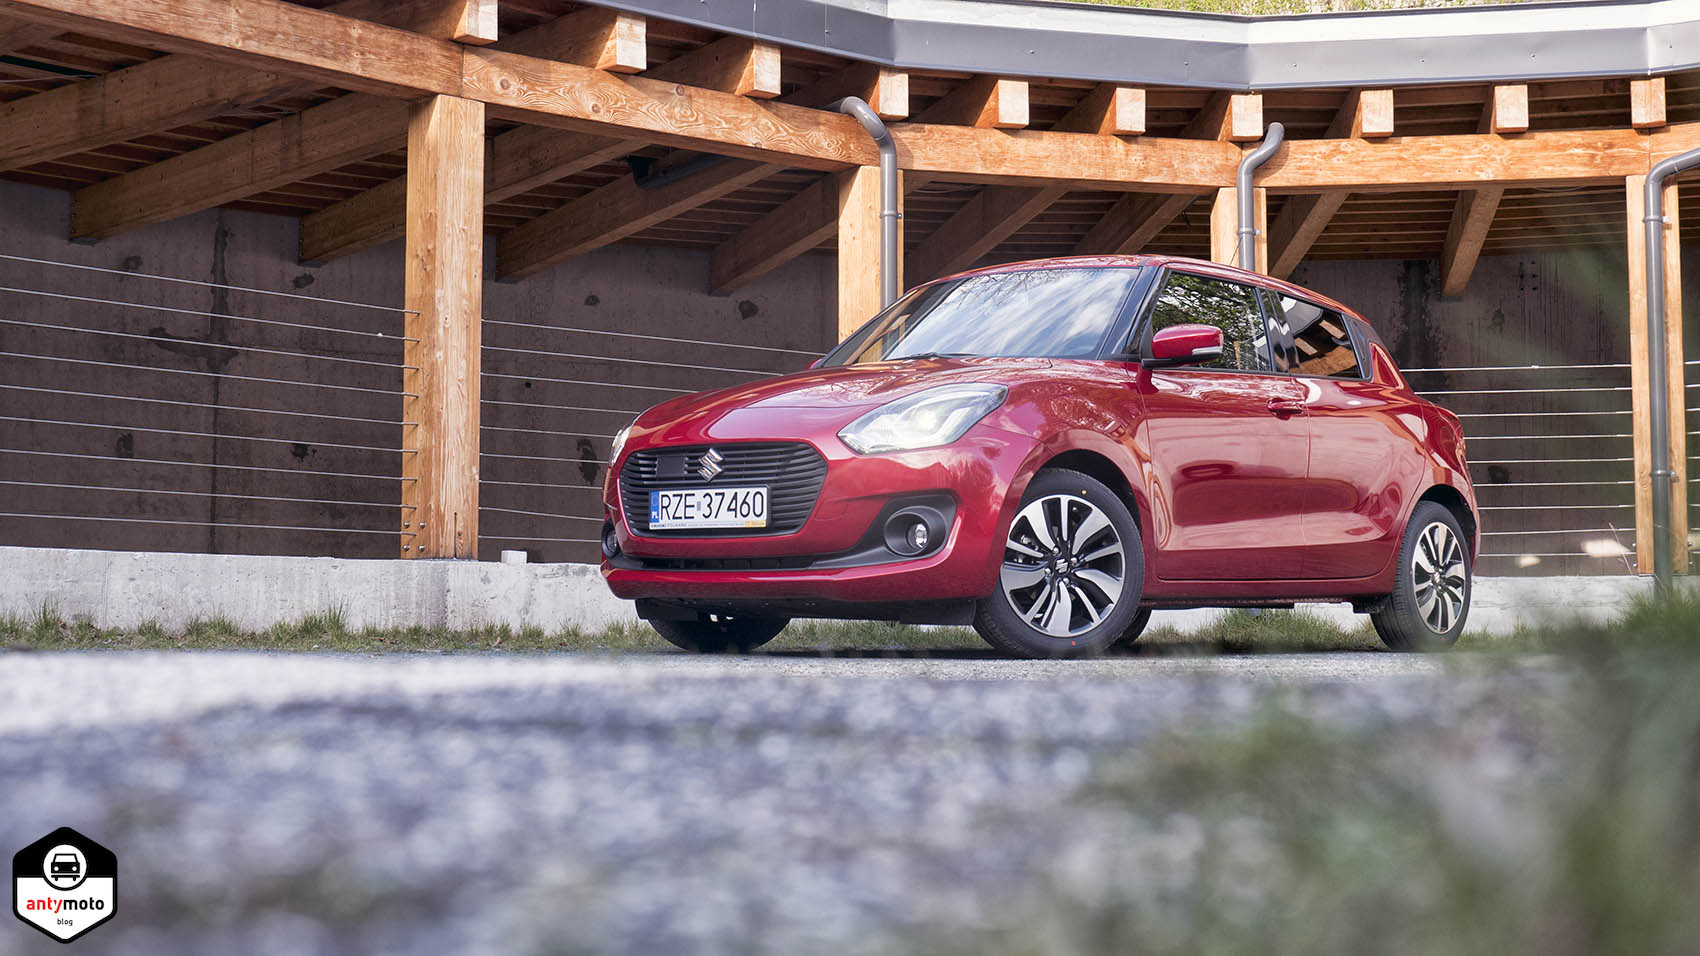 Nowe Suzuki Swift test